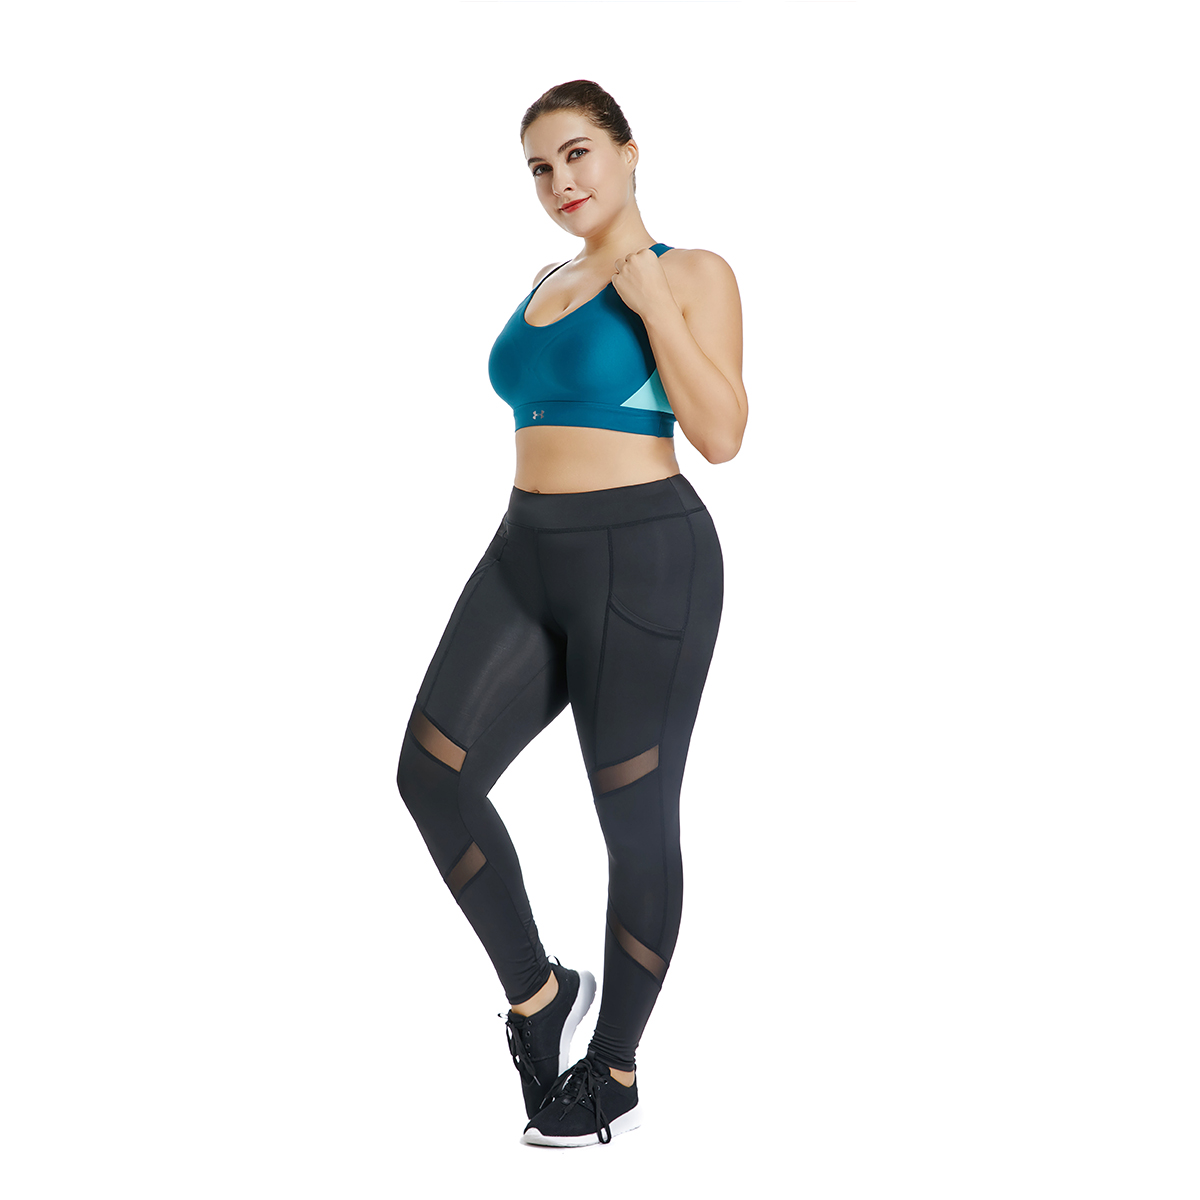 Joyshaper Plus Size Women Ankle Length High Elasticity Workout Leggings With Pockets Breathable Mesh Gym Sport Pants Black